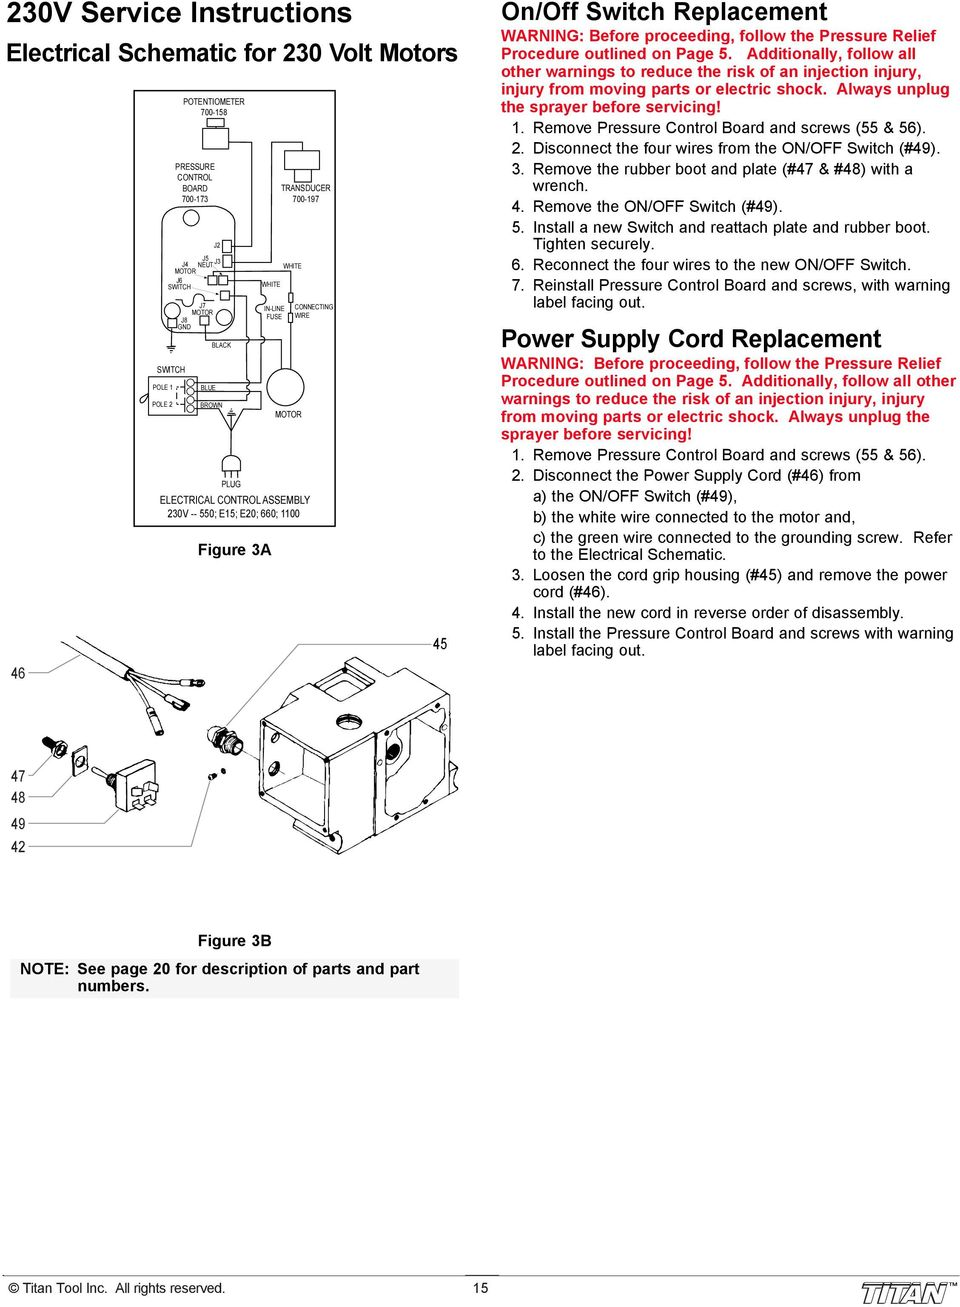 660xc Airless Sprayer Pdf Paint Wiring Diagram Proceeding Follow The Pressure Relief Procedure Outlined On Page 5 Additionally All